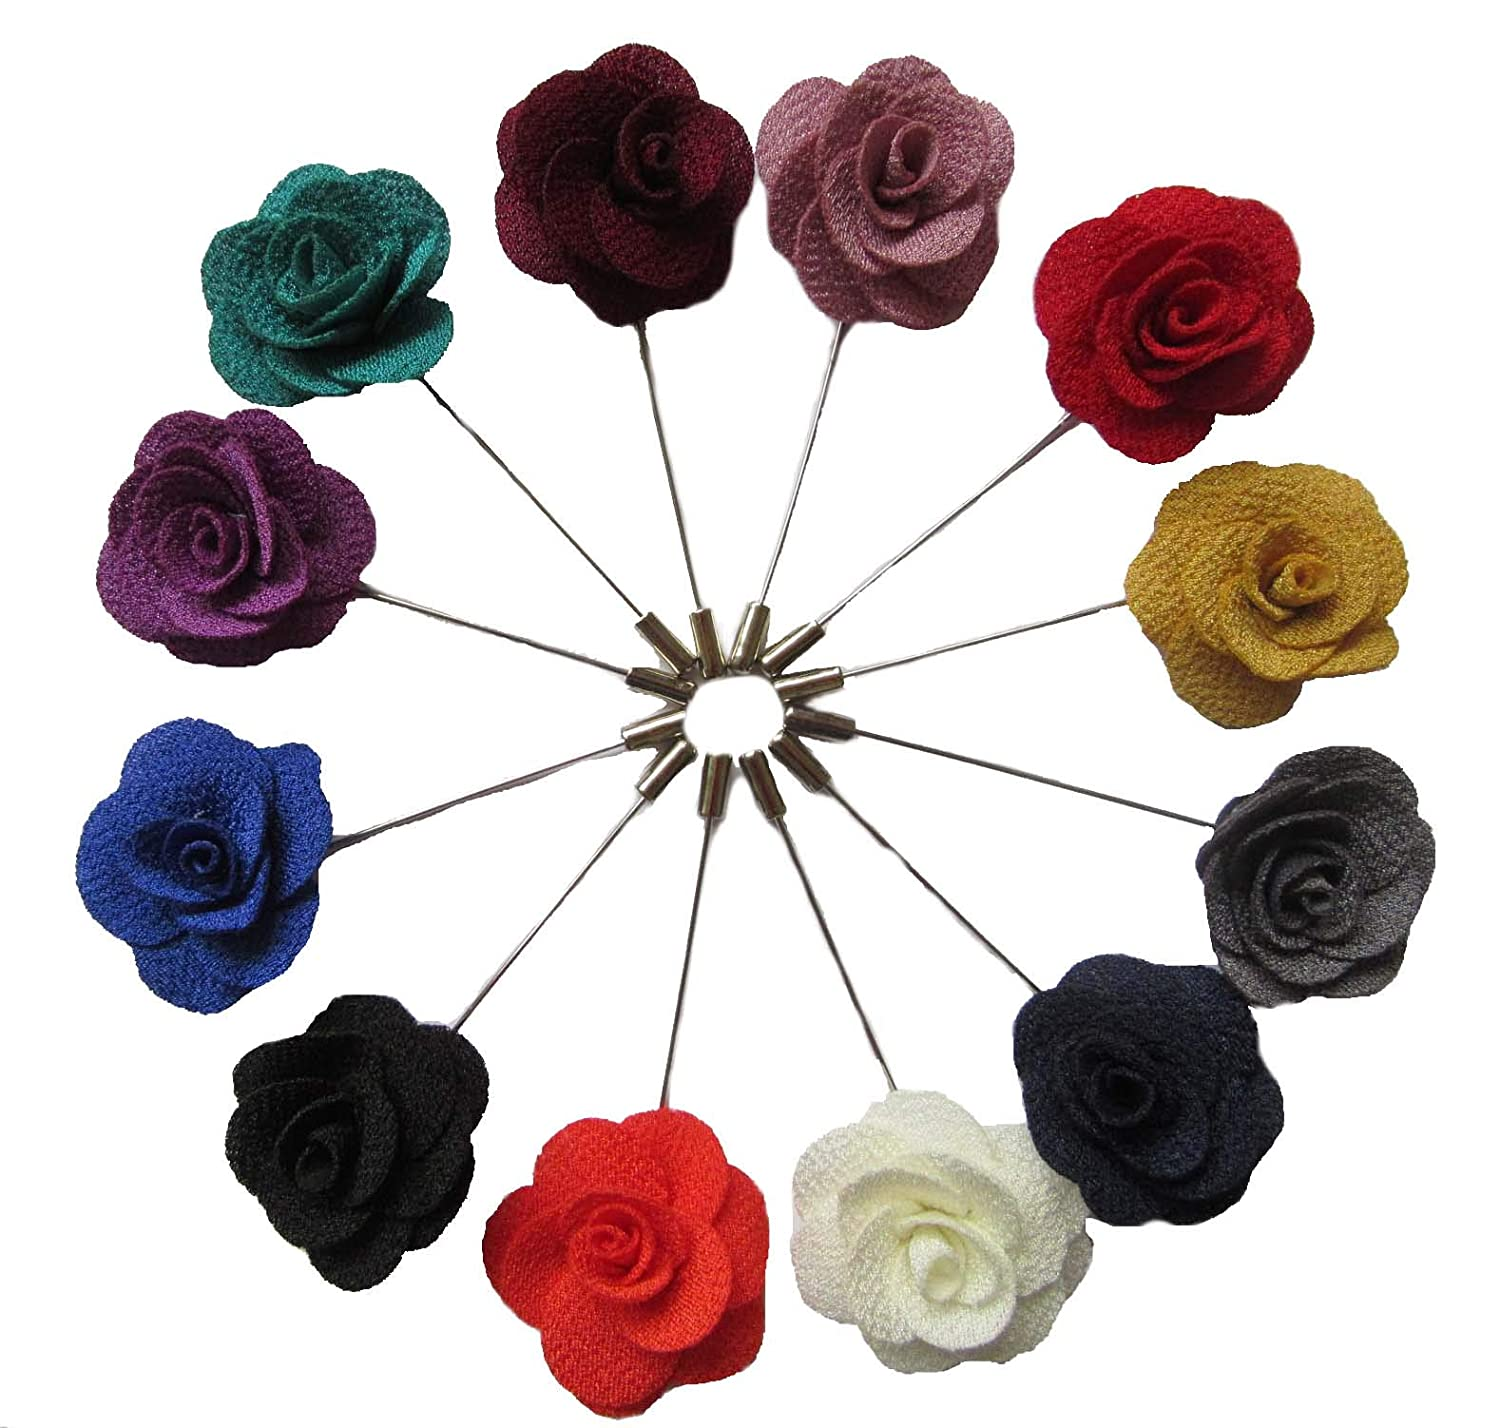 10 pcs Fabric Rose Boutonniere Pins,YYCRAFT Mens Flower Lapel Pins for Party Business Wedding Suit